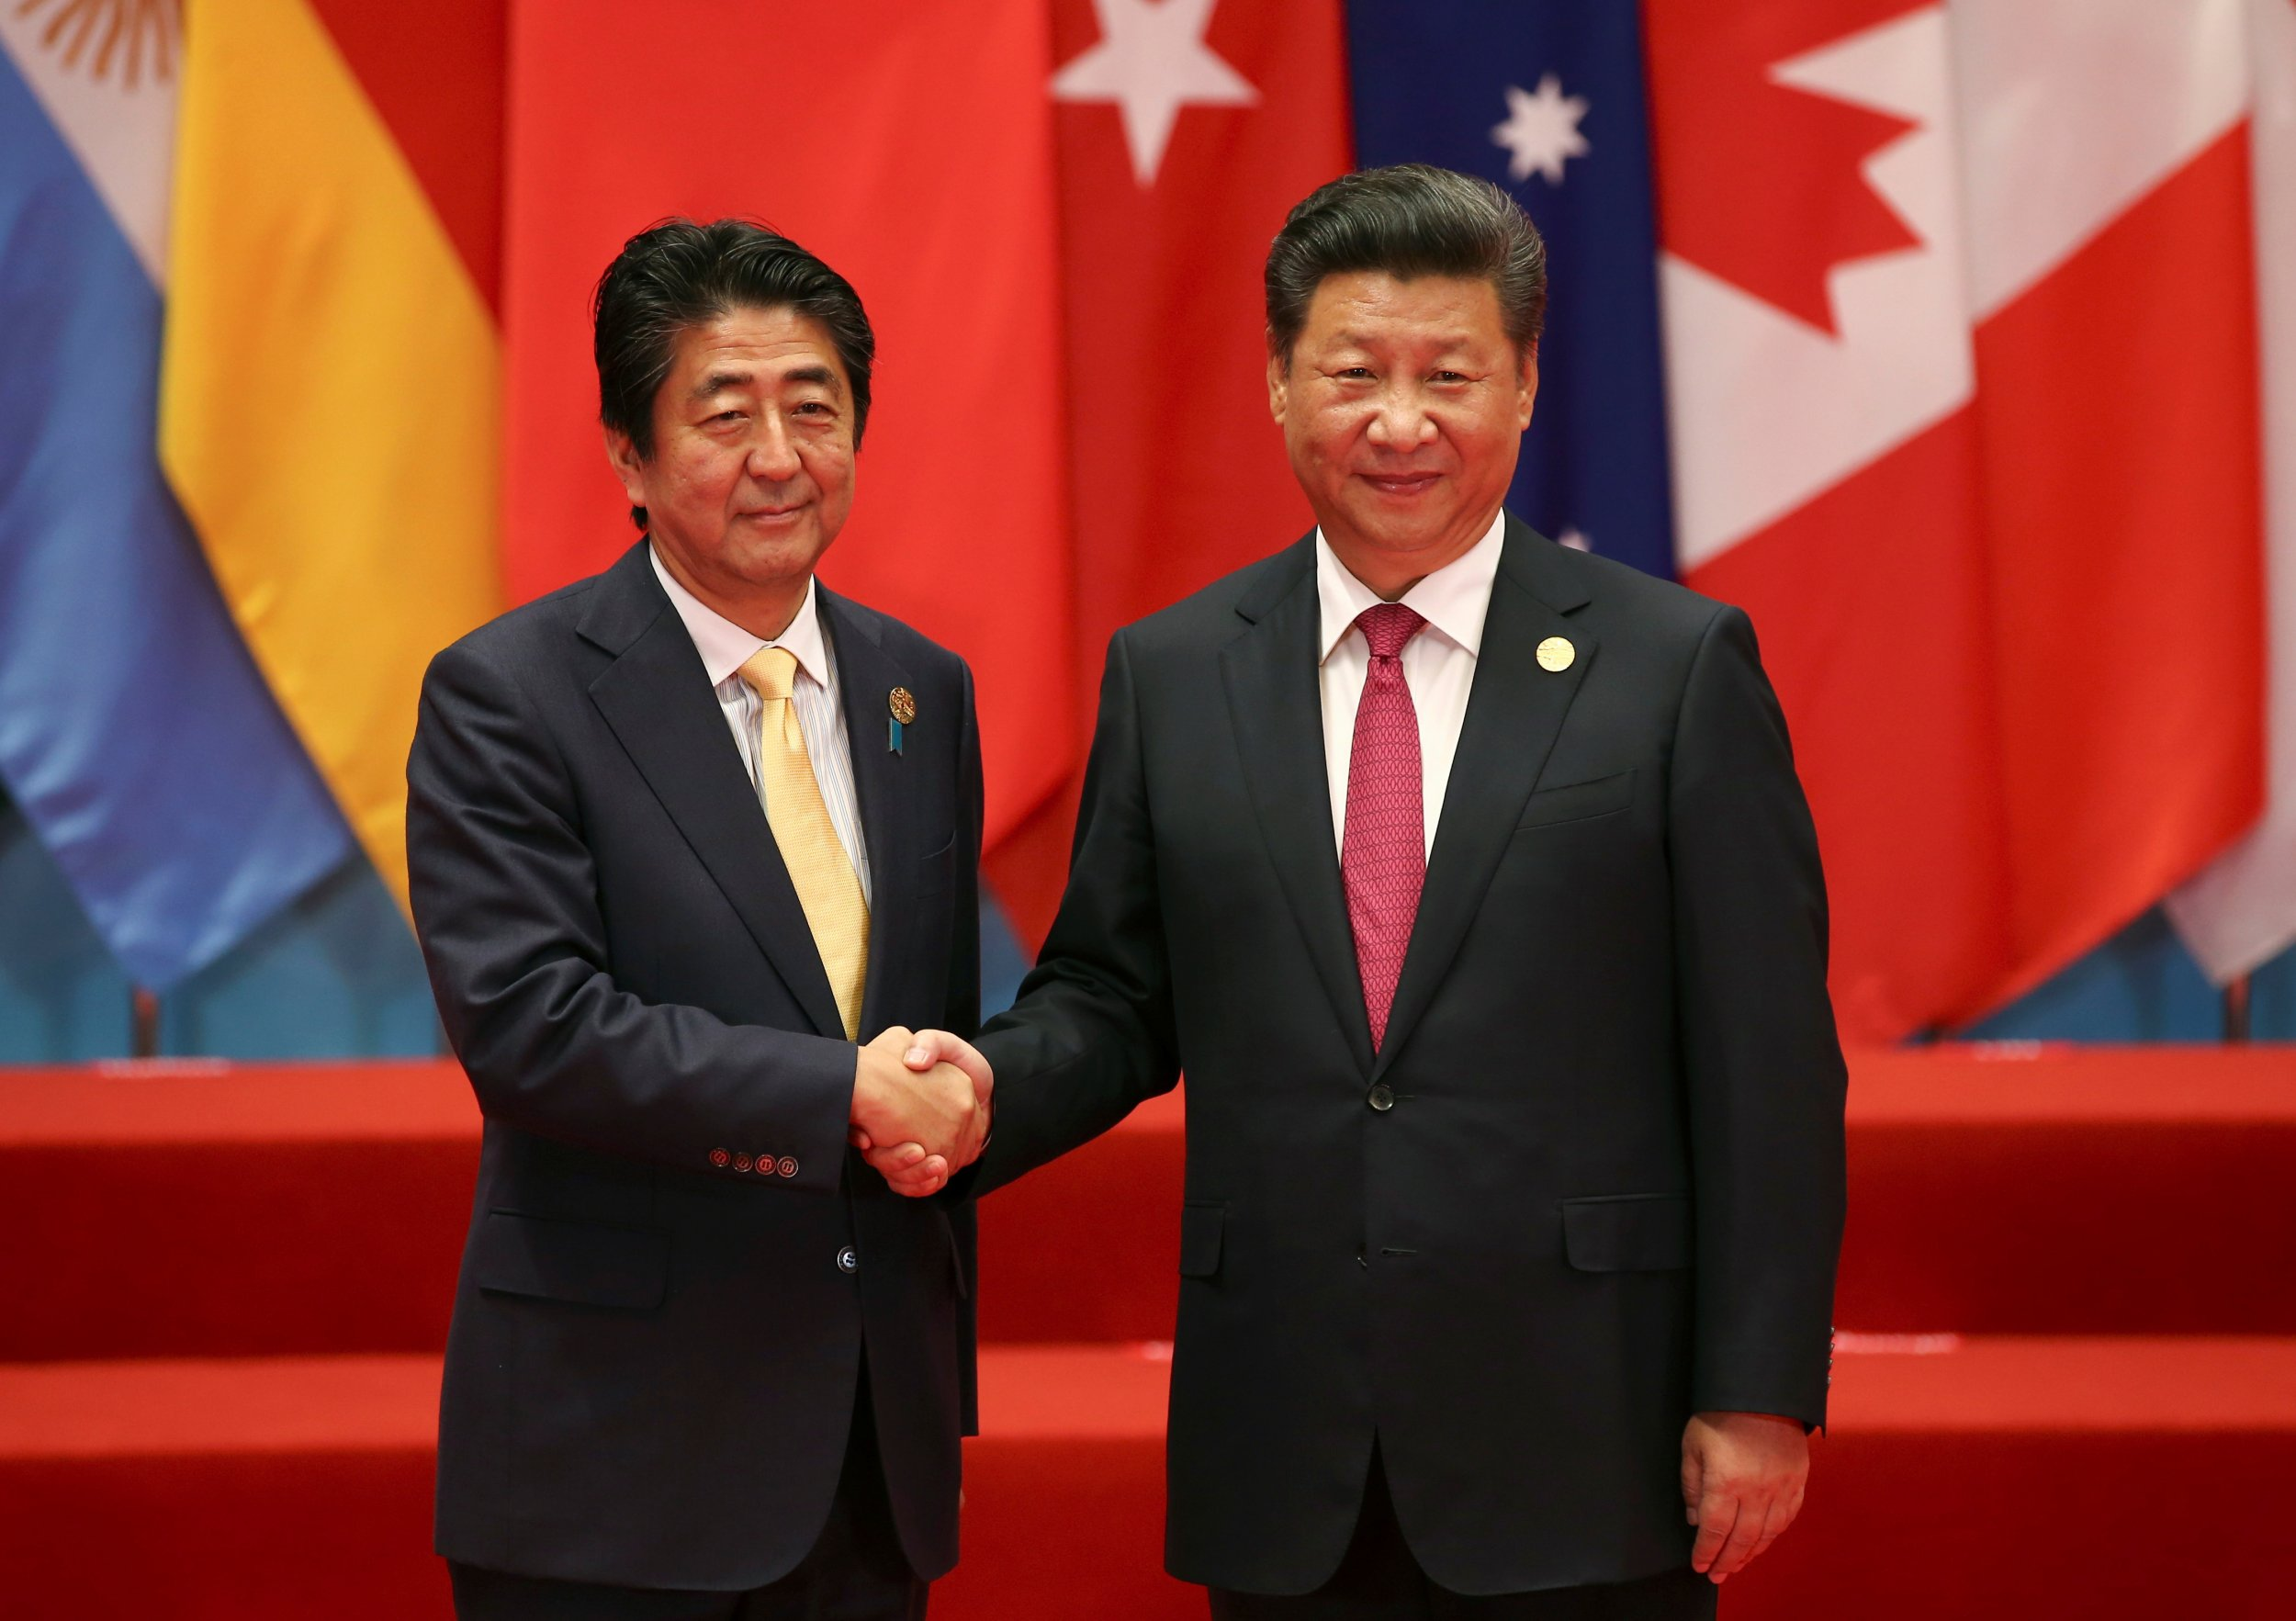 Xi Jinping and Shinzo Abe